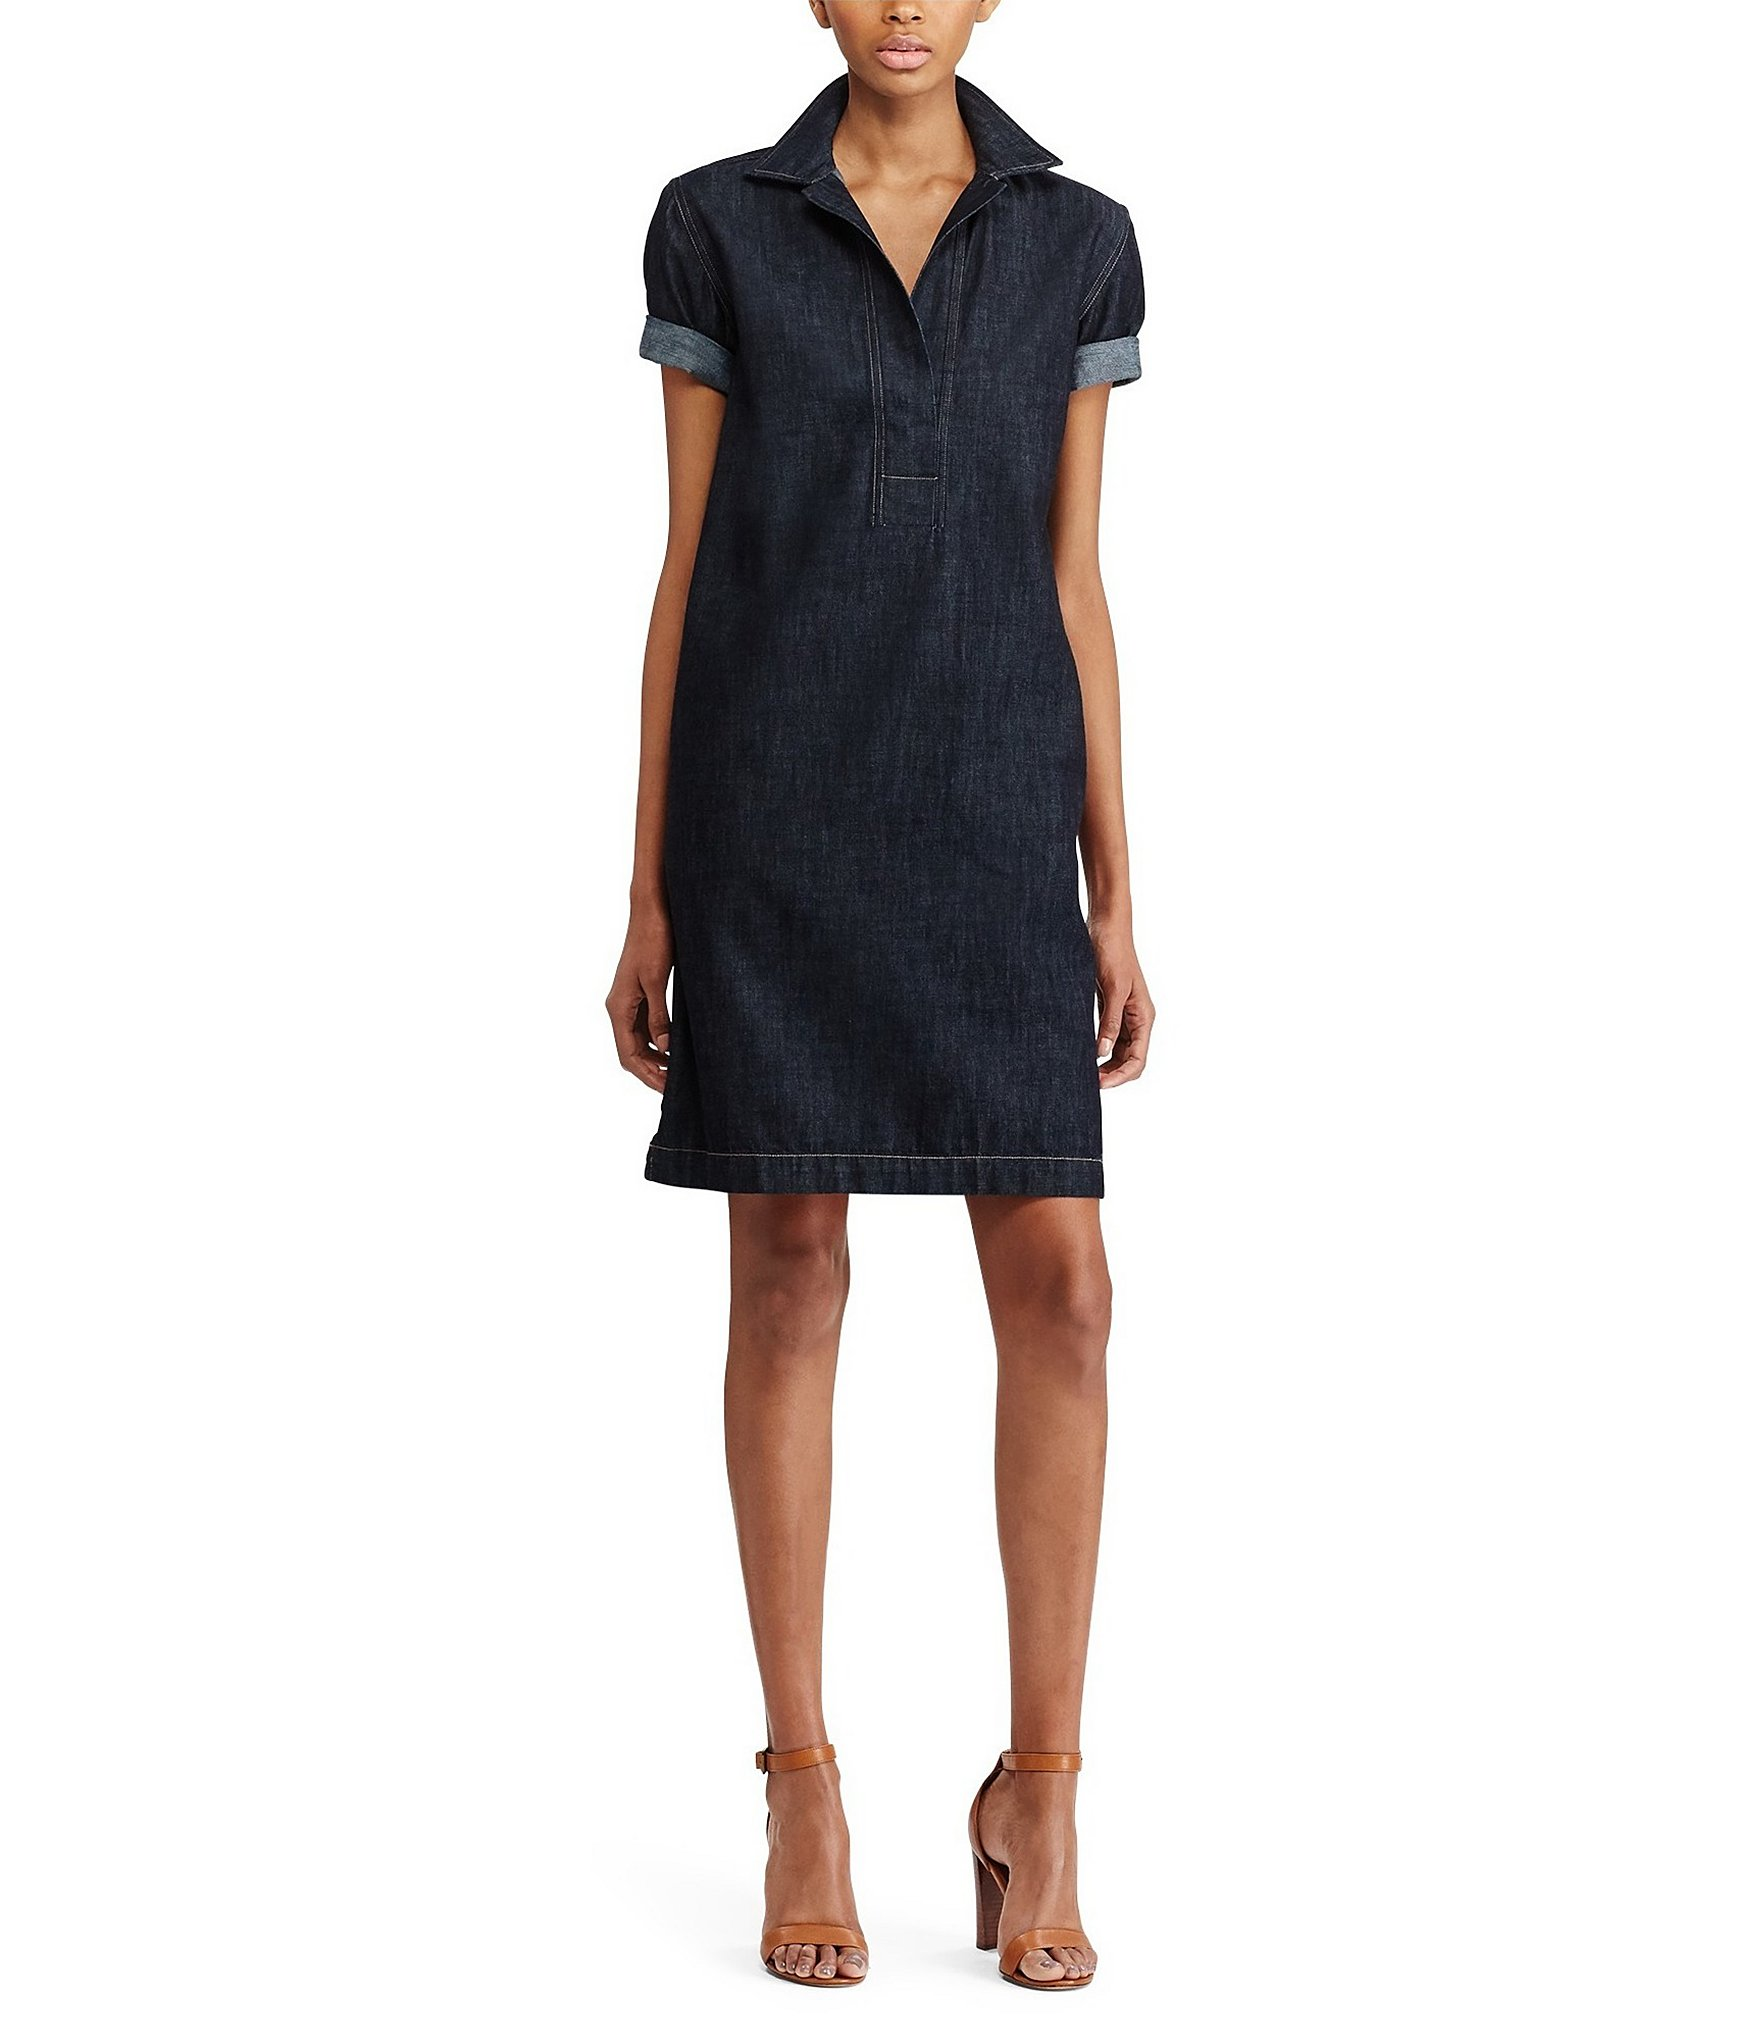 Lauren Ralph Lauren Väskor : Lauren ralph petite denim shift dress dillards